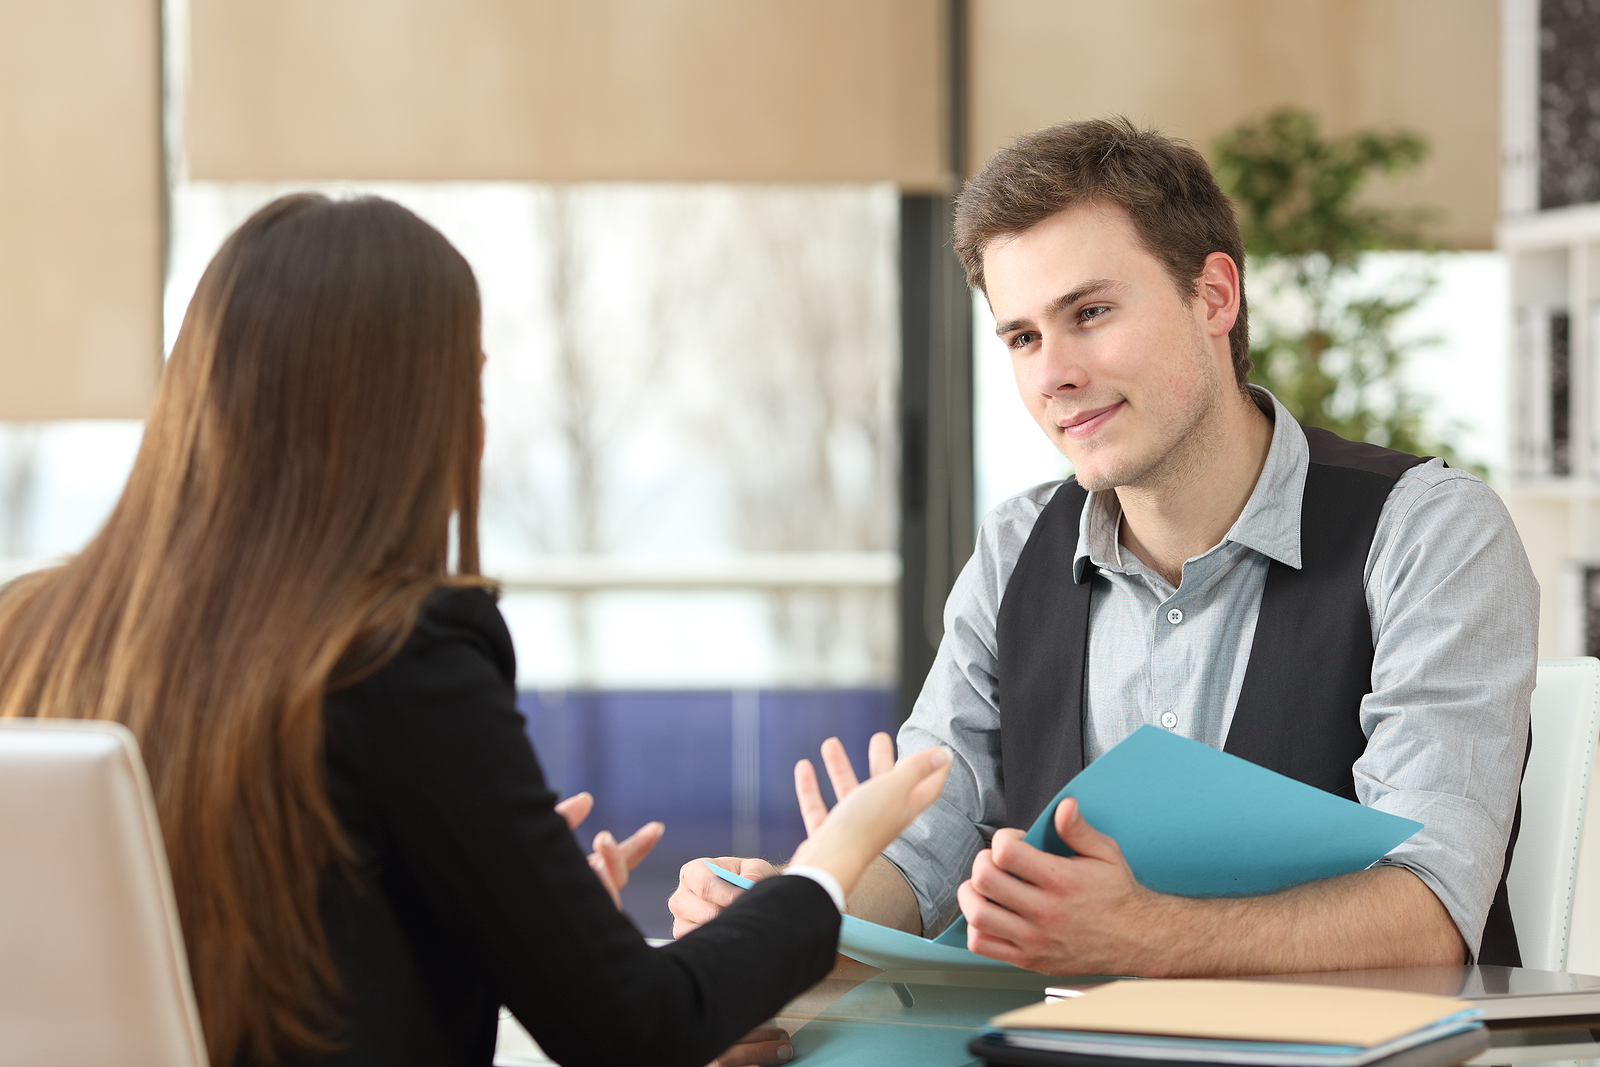 4 ways to be a more compassionate communicator in business